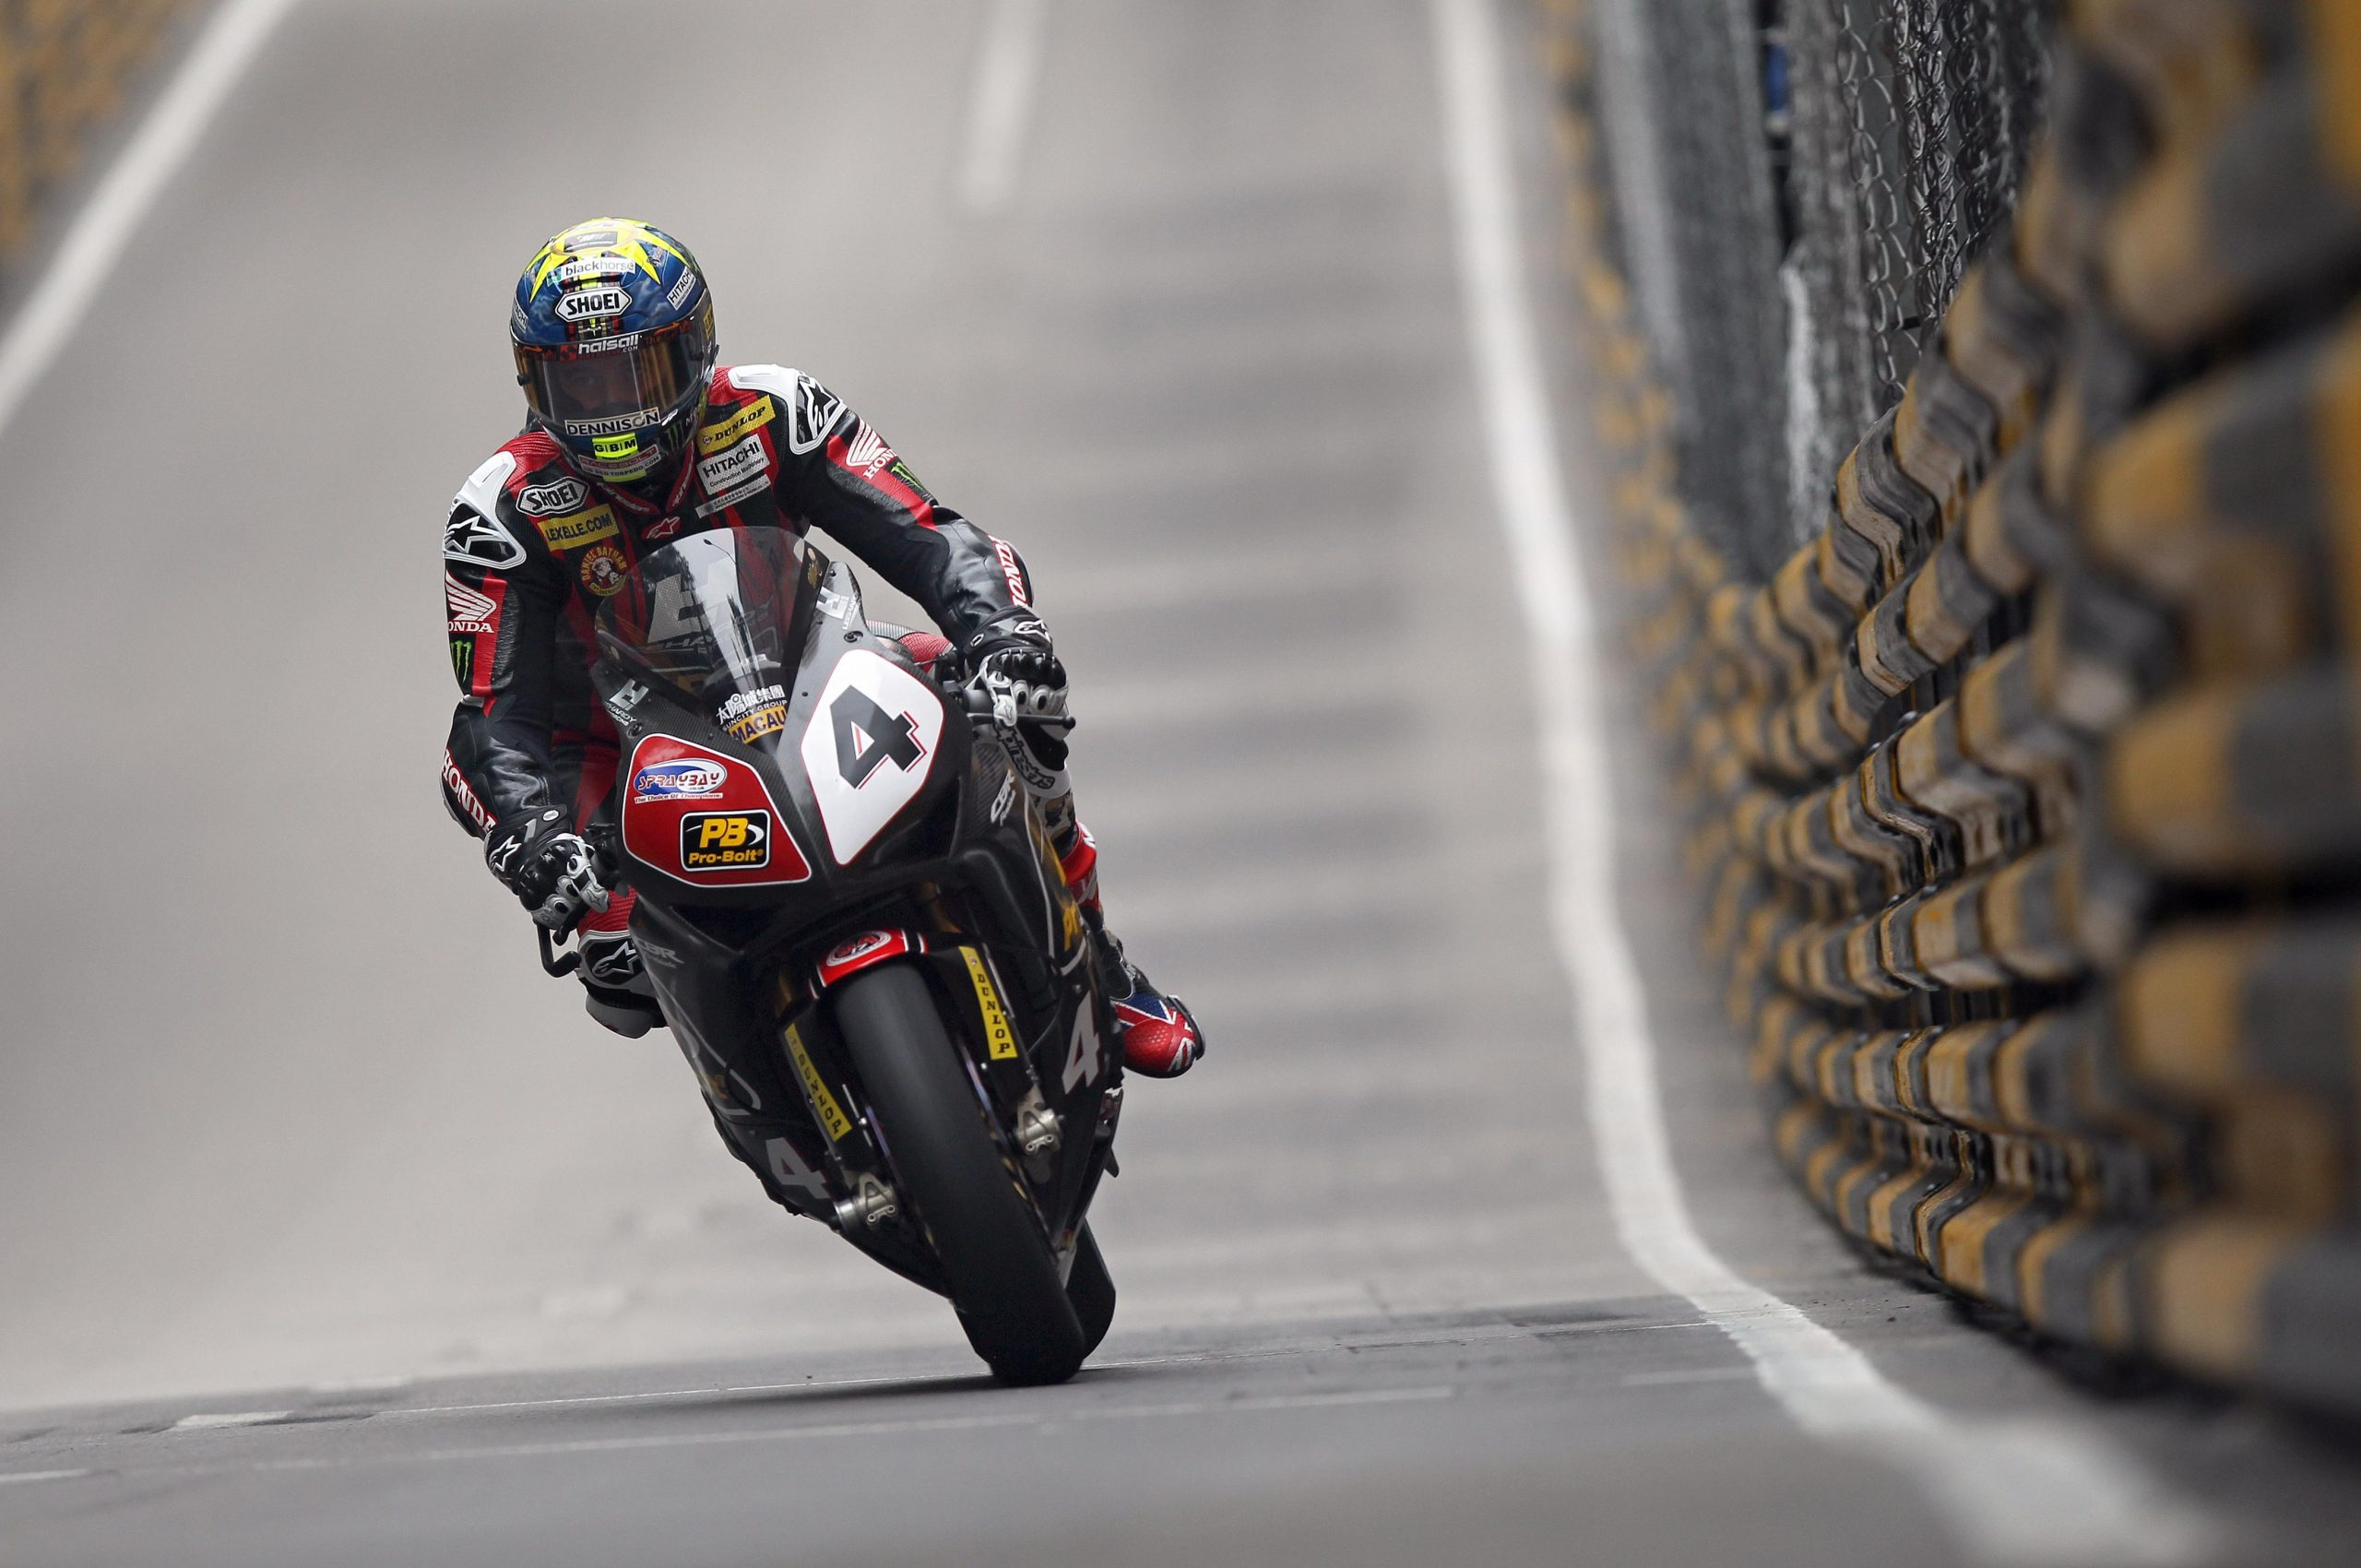 John McGuinness - Macau 2014 image by Stephen Davison - Pacemaker Press International